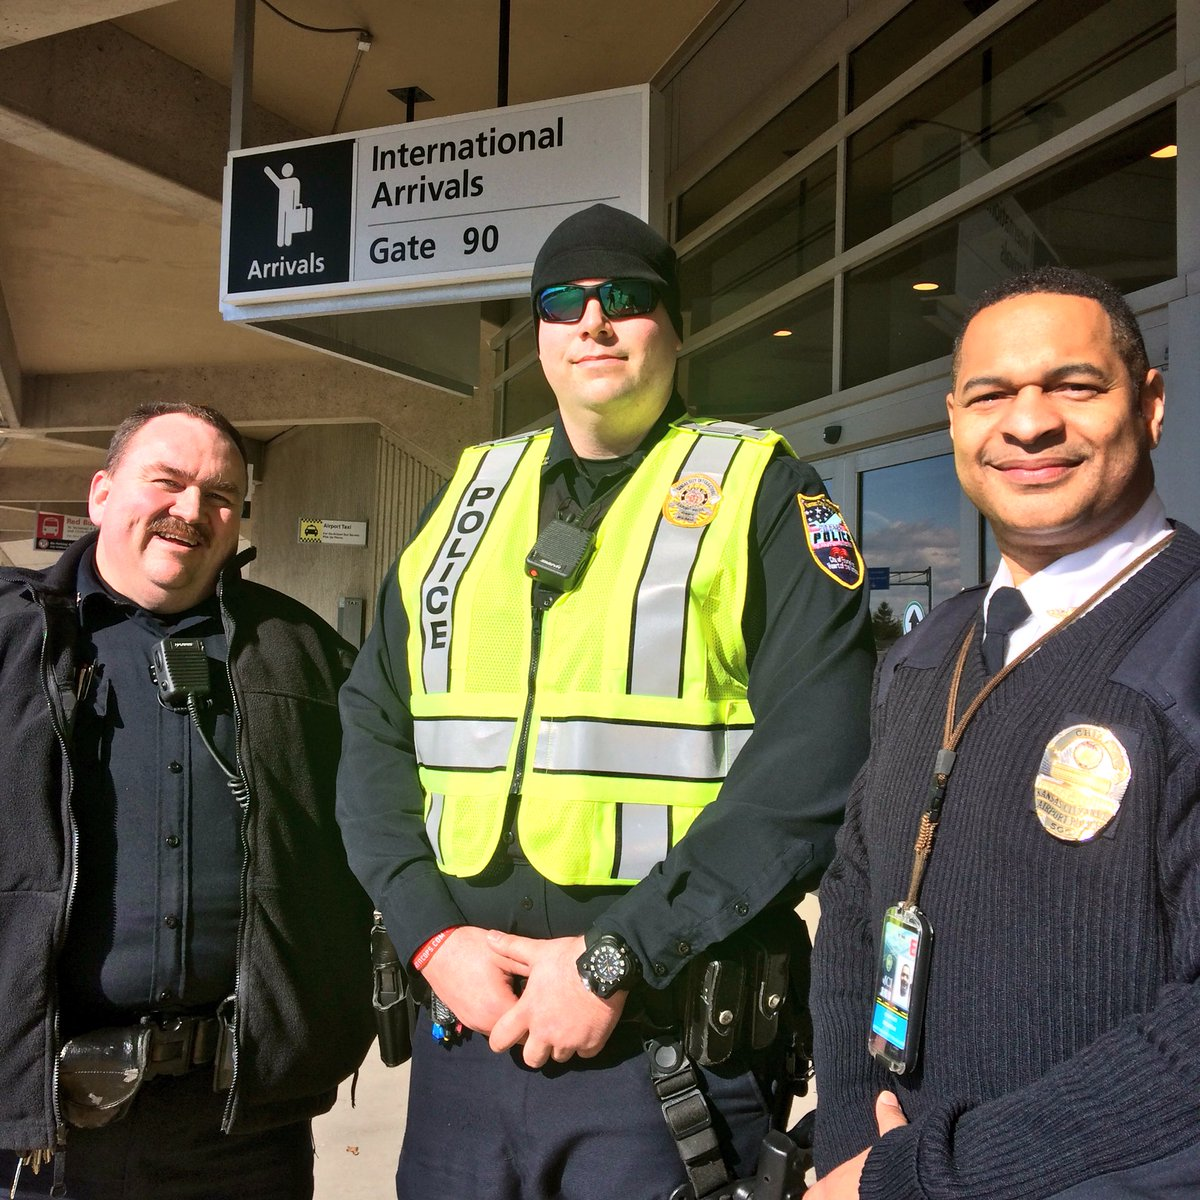 We'd like to thank the KCI Airport Police team for their work in creating a safe place for people to assemble today. https://t.co/4PpeaP18Zt